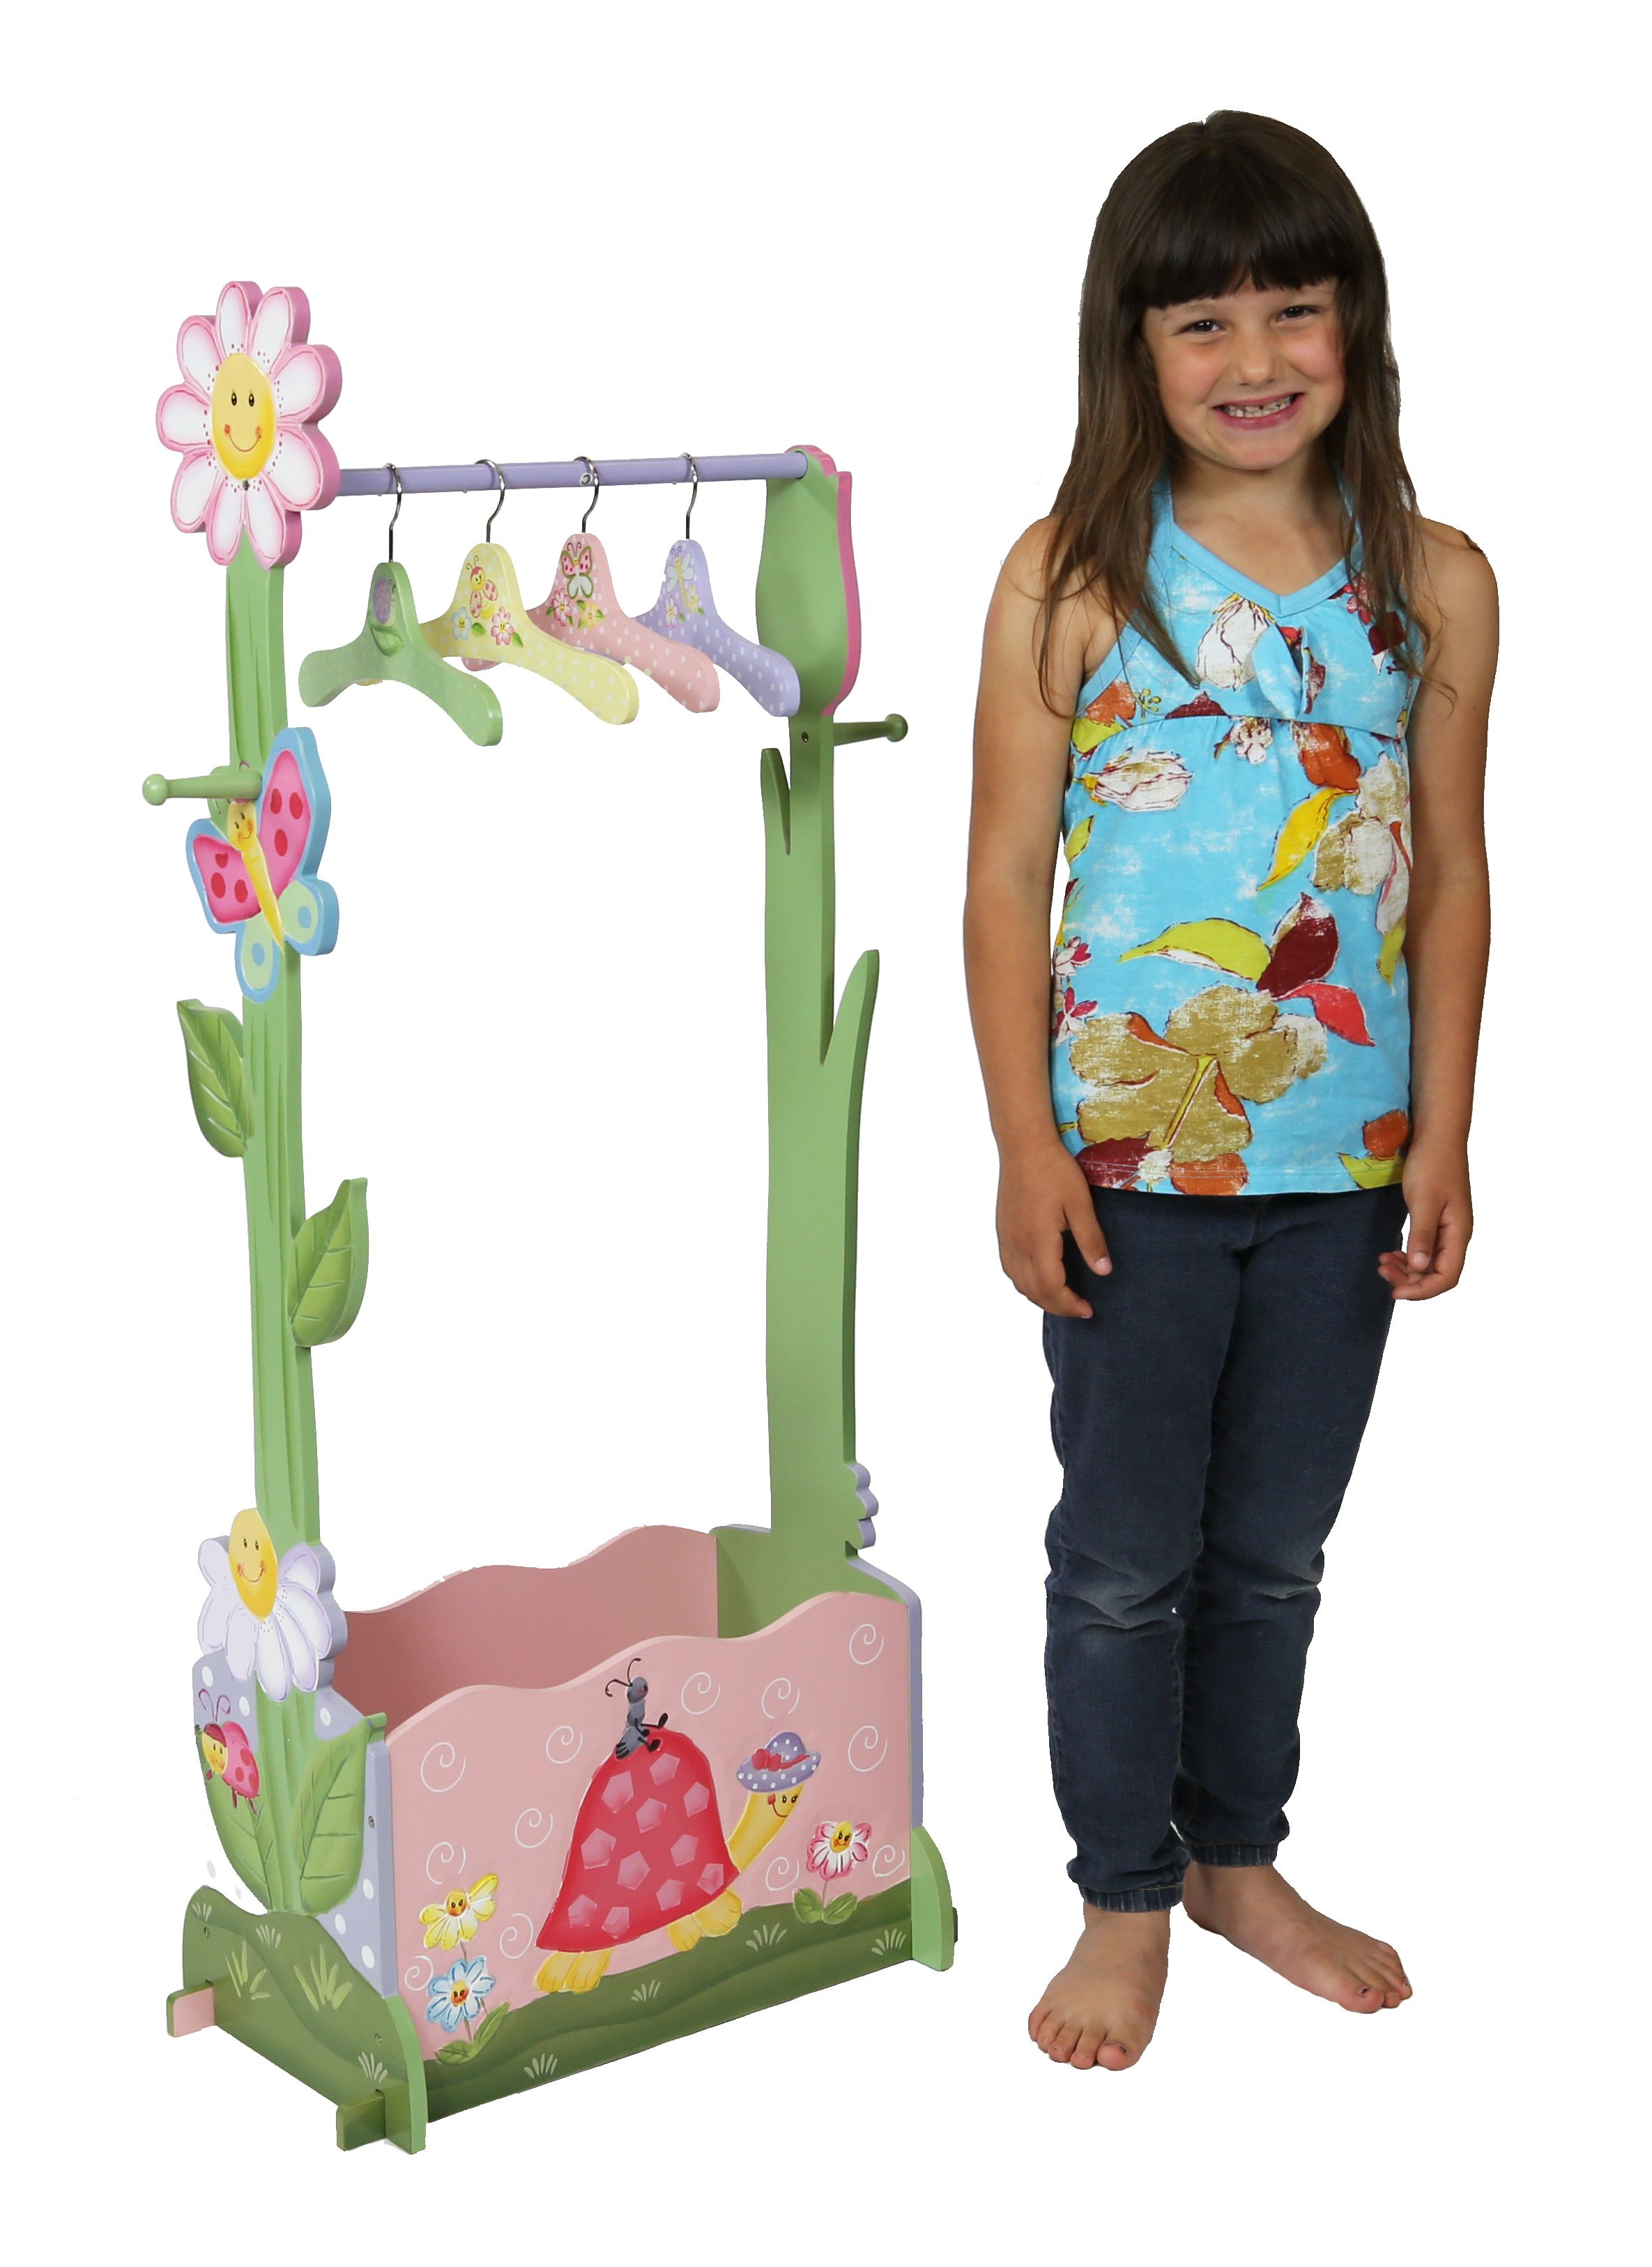 Romantic Flair Original - Magic Garden Clothing Rack with 4 Hangers by Teamson